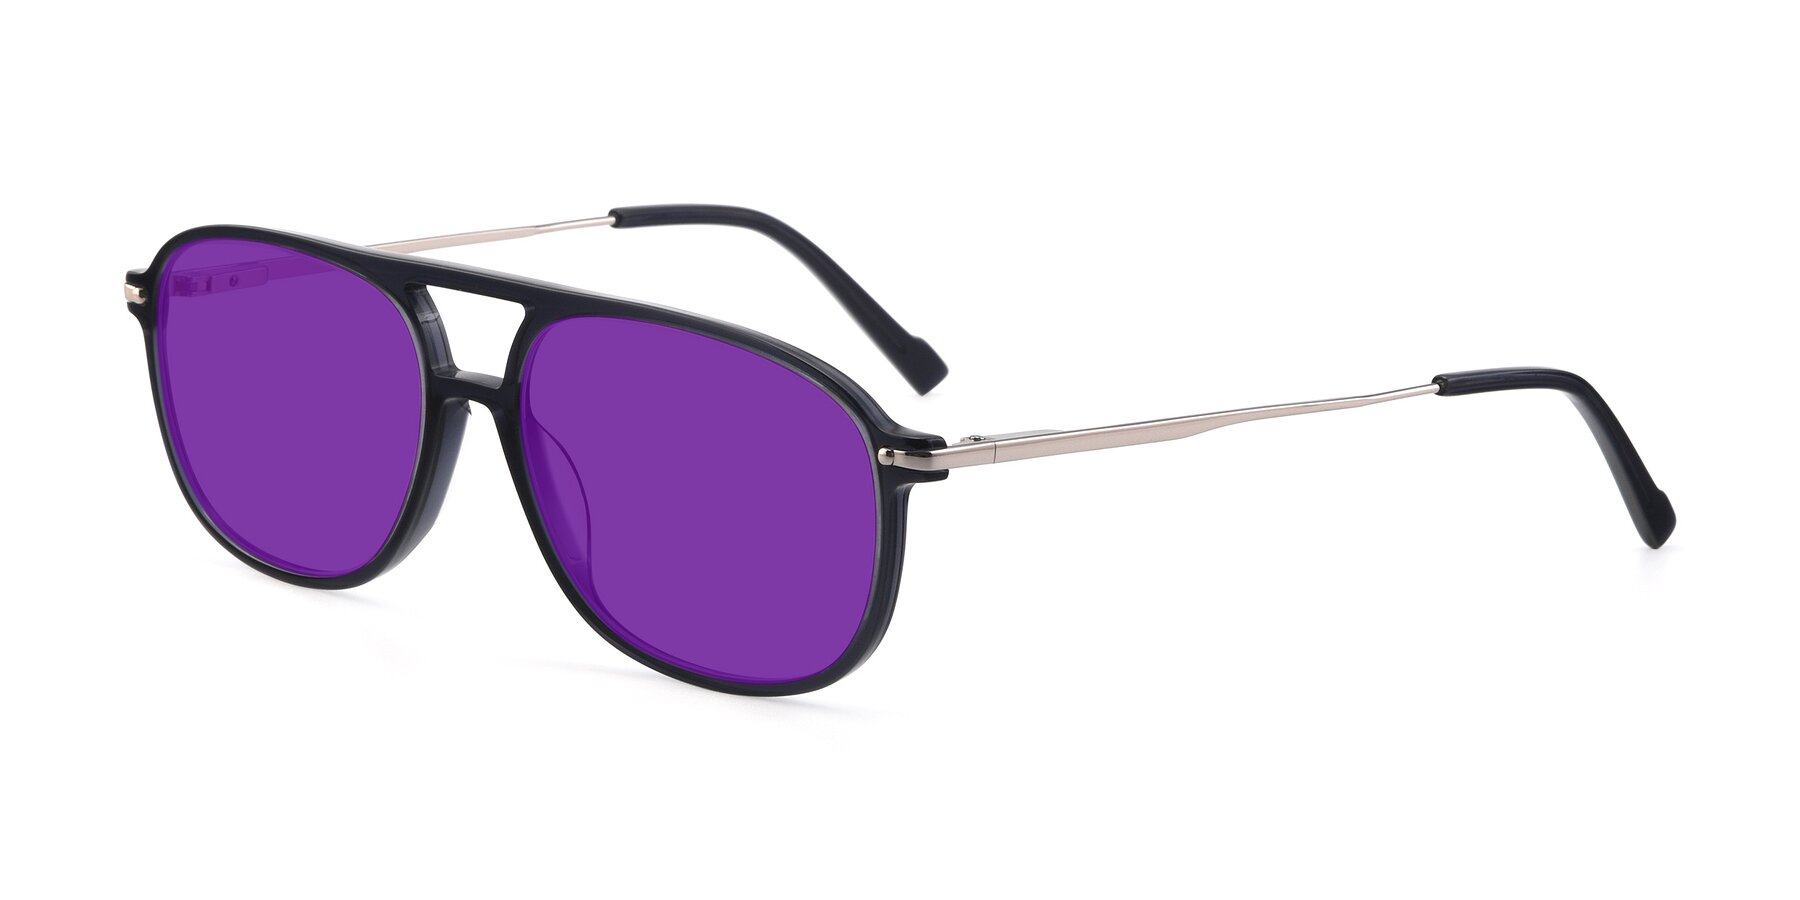 Angle of 17580 in Dark Bluish Gray with Purple Tinted Lenses